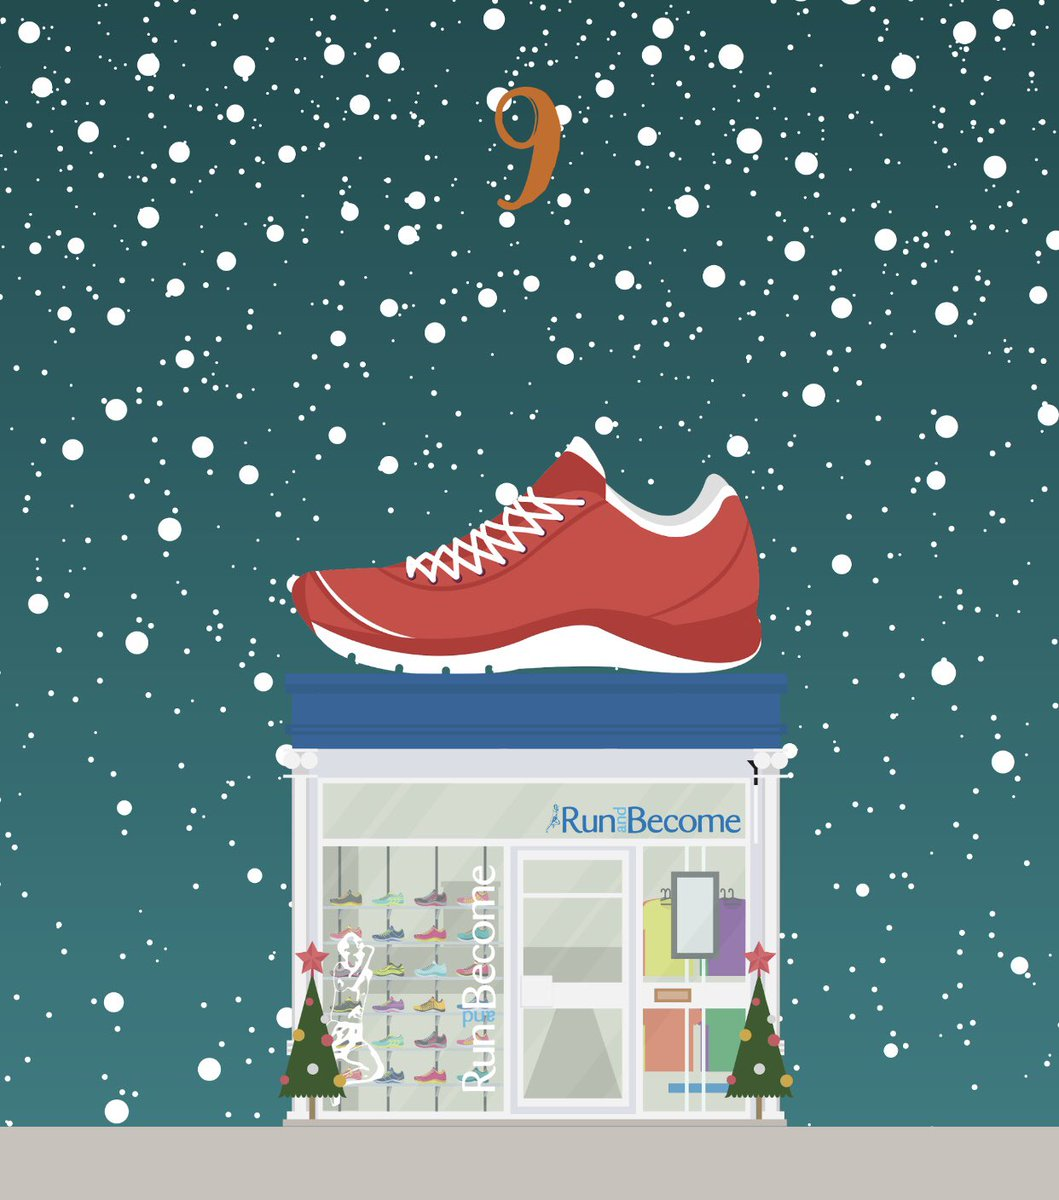 #StepIntoTheWestEnd 🎄✨ It's Day 9 of our Advent Calendar/Stamp Card Competition. Simply spend in store to collect a stamp. Collect 12 out of the 26 stamps to be in the running to win a Christmas Hamper worth over £1,000 (T's and C's apply)  @runandbecome1 🏃🏼‍♀️👟  #hiddengems